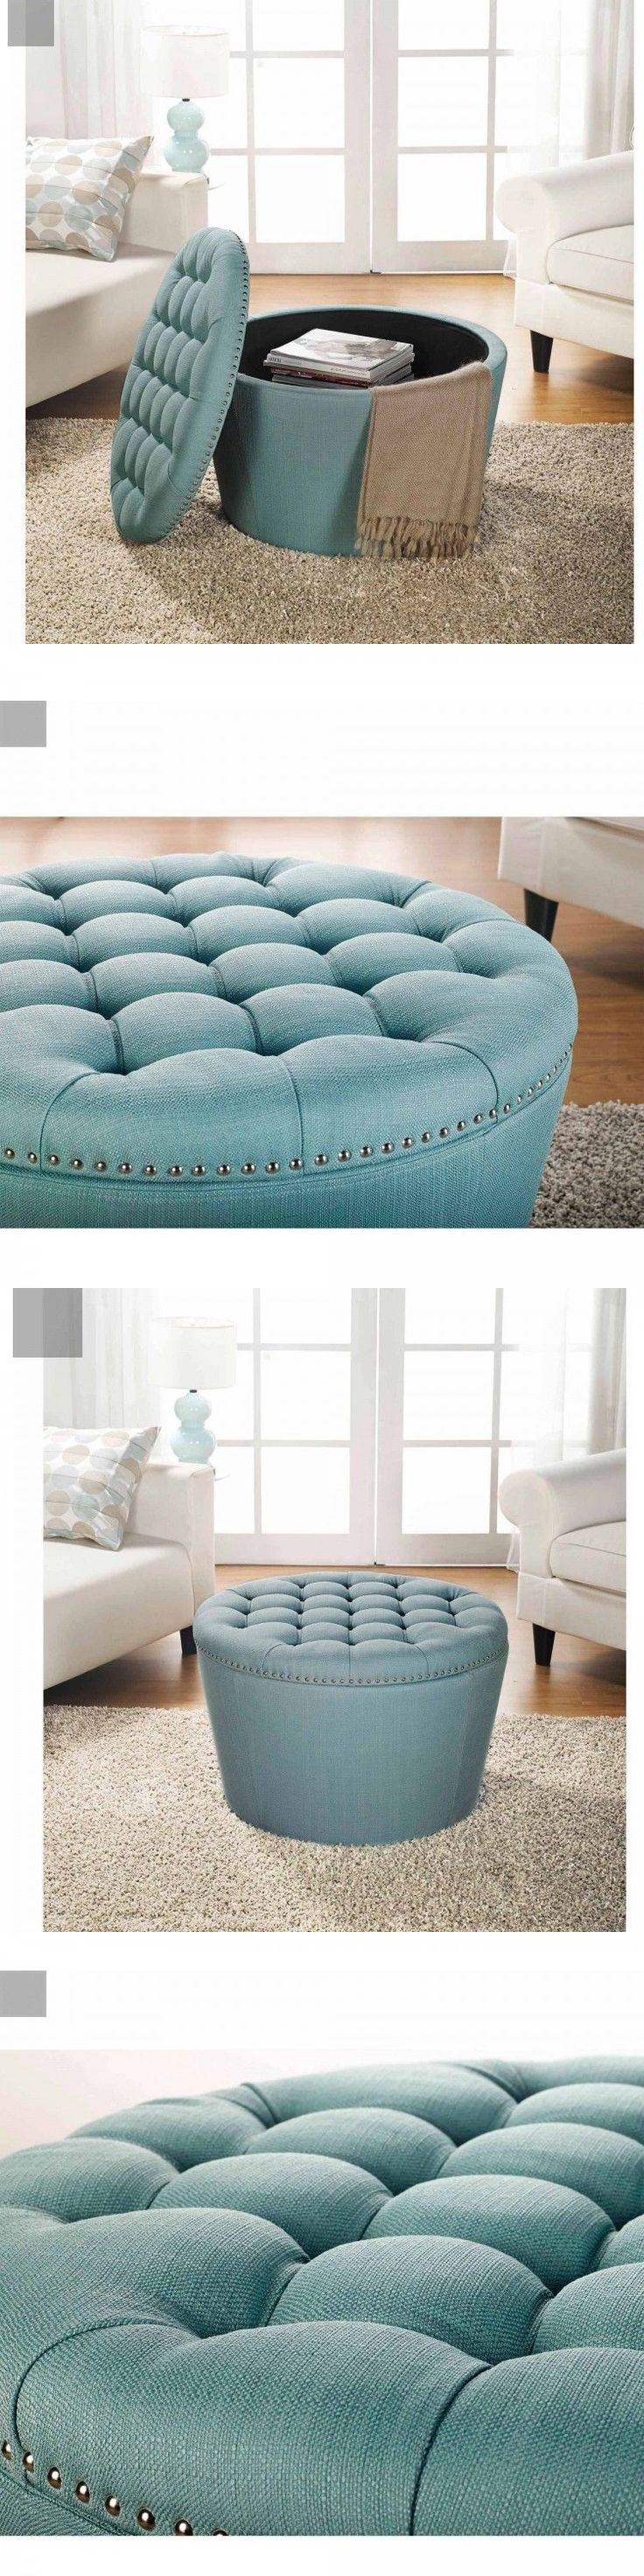 best 25 round storage ottoman ideas on pinterest ottoman with ottomans footstools and poufs 20490 round storage ottoman aqua bench tufted fabric upholstered nailheads footstool